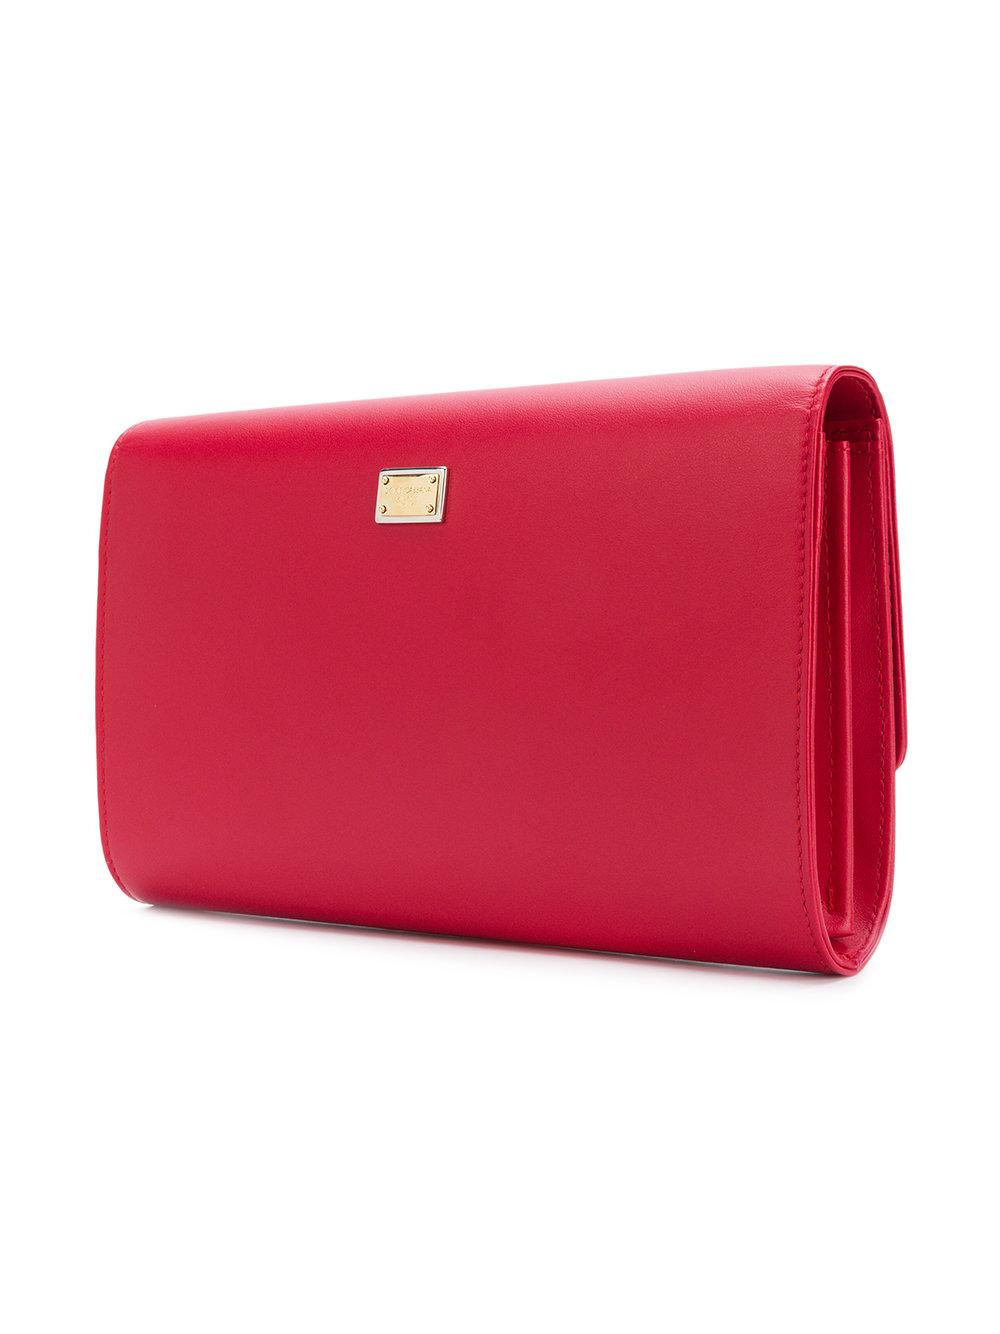 LAmour clutch bag - Red Dolce & Gabbana